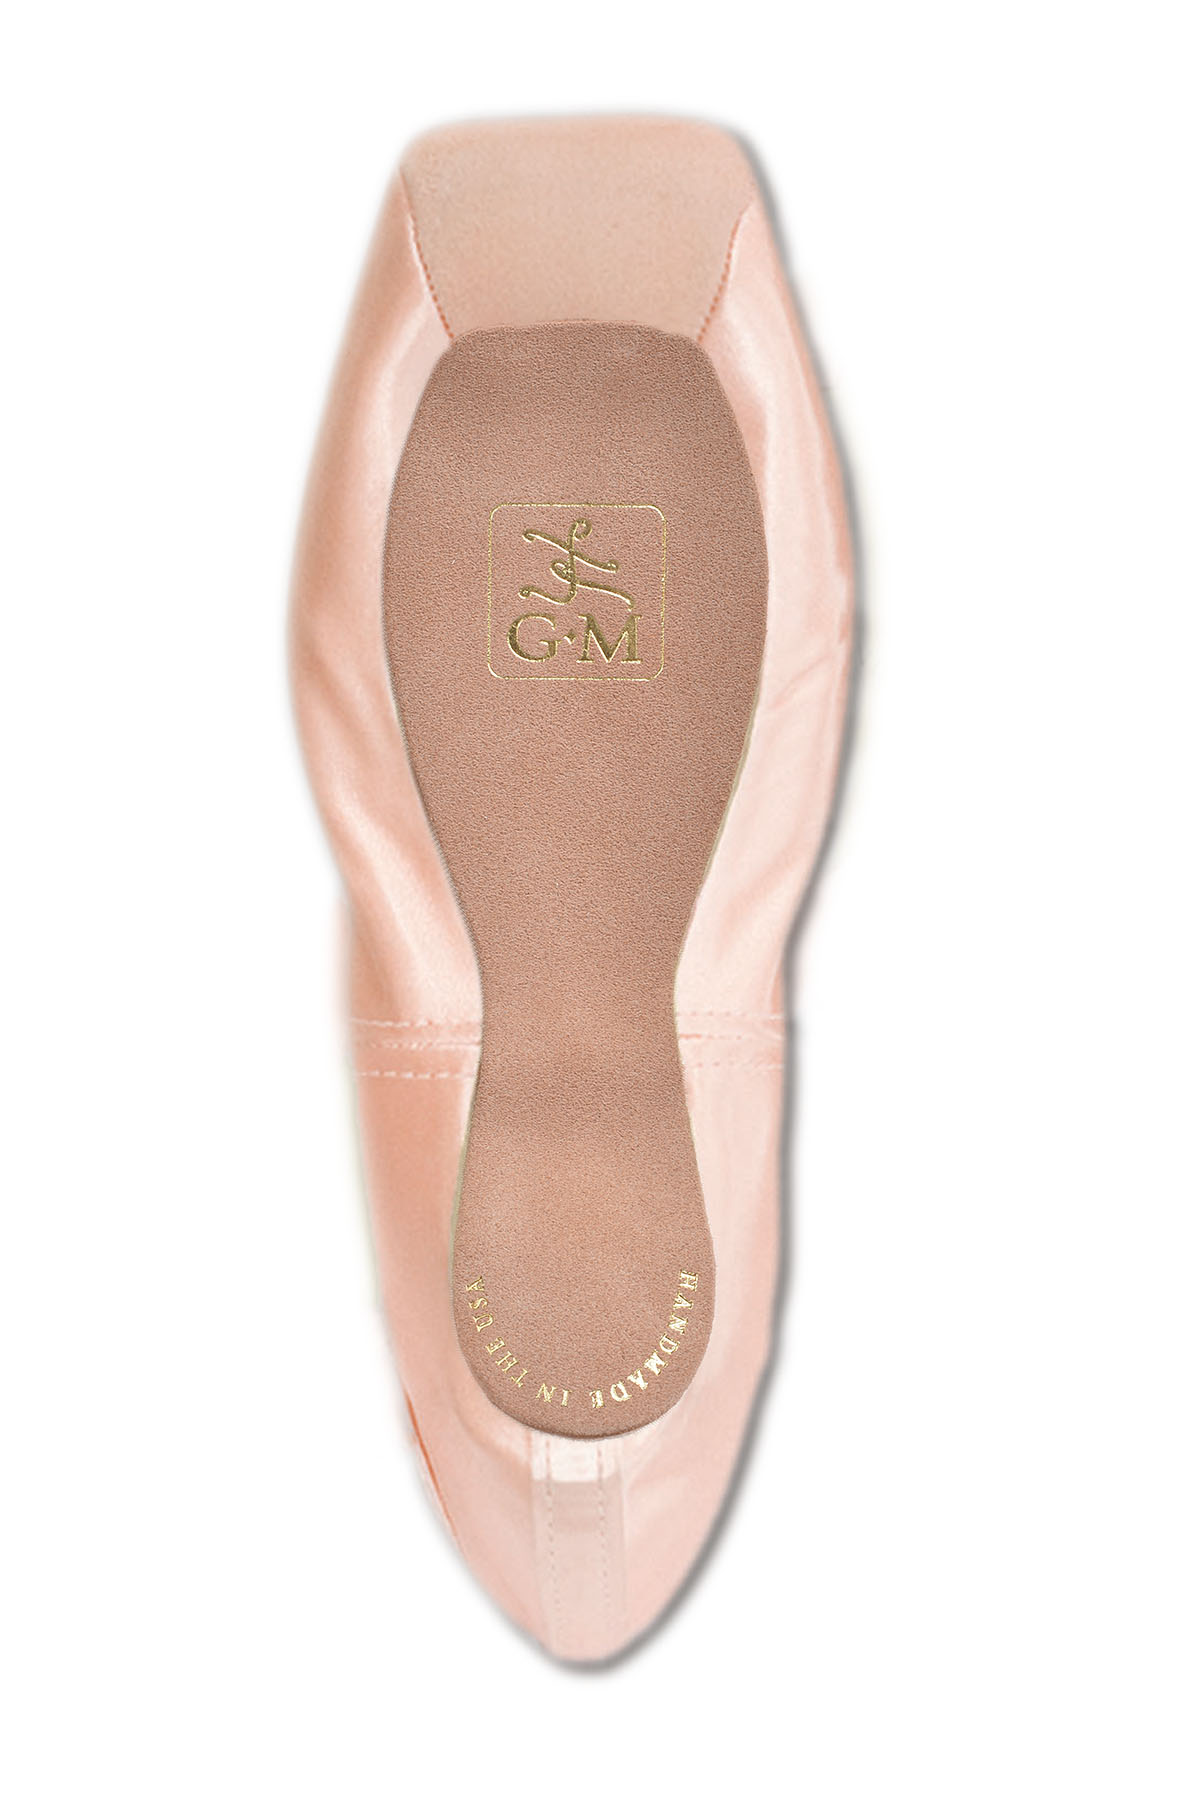 Order Pointe Shoes Online